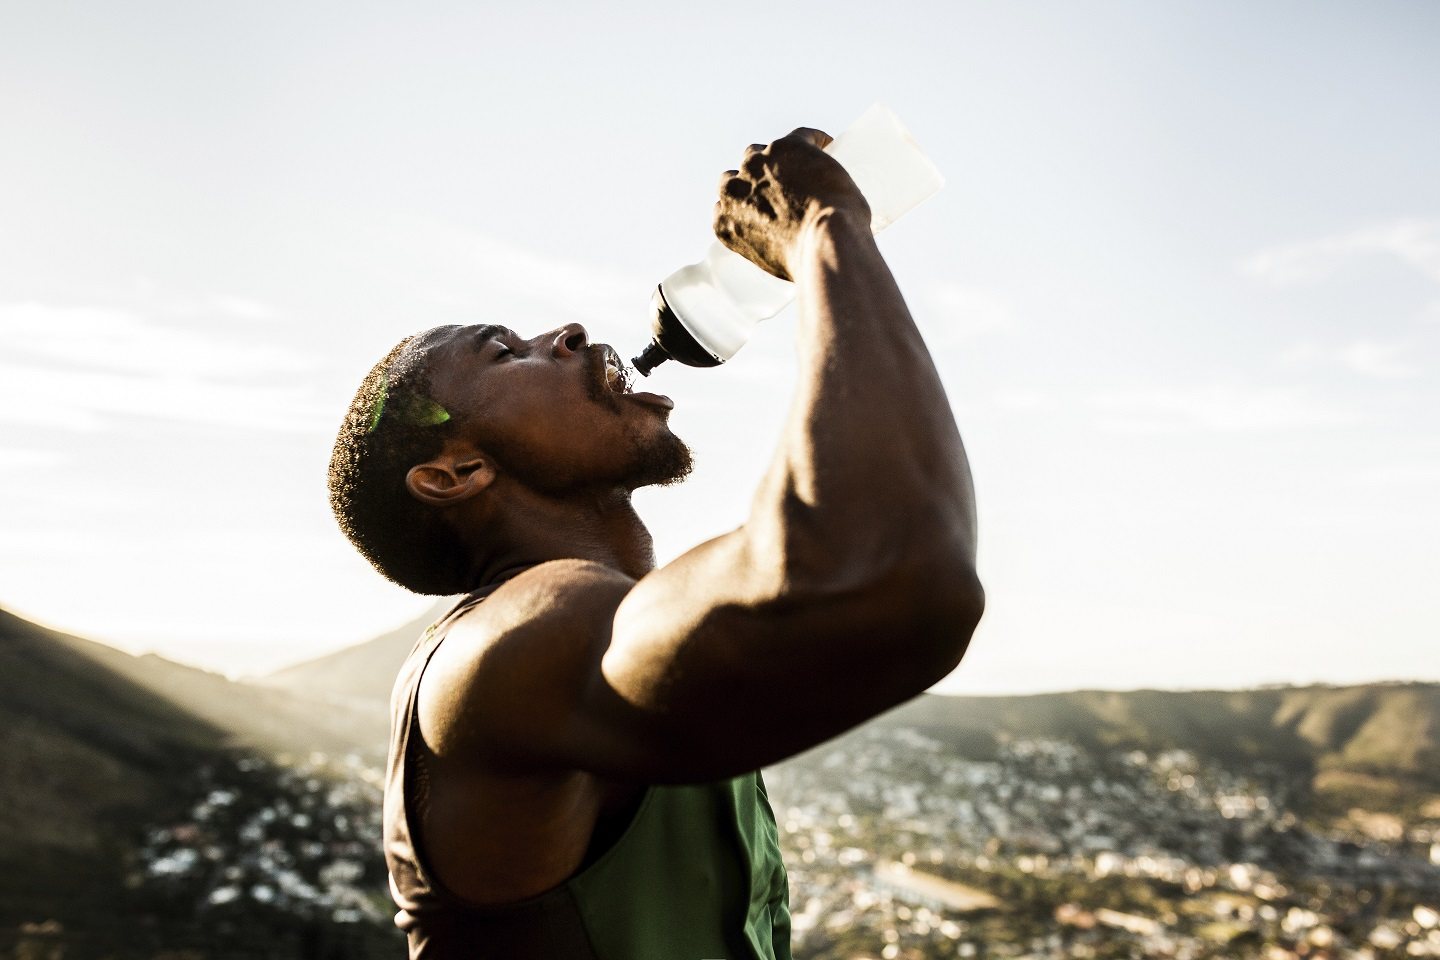 Thirsty African American athlete pouring water into his mouth after a morning run